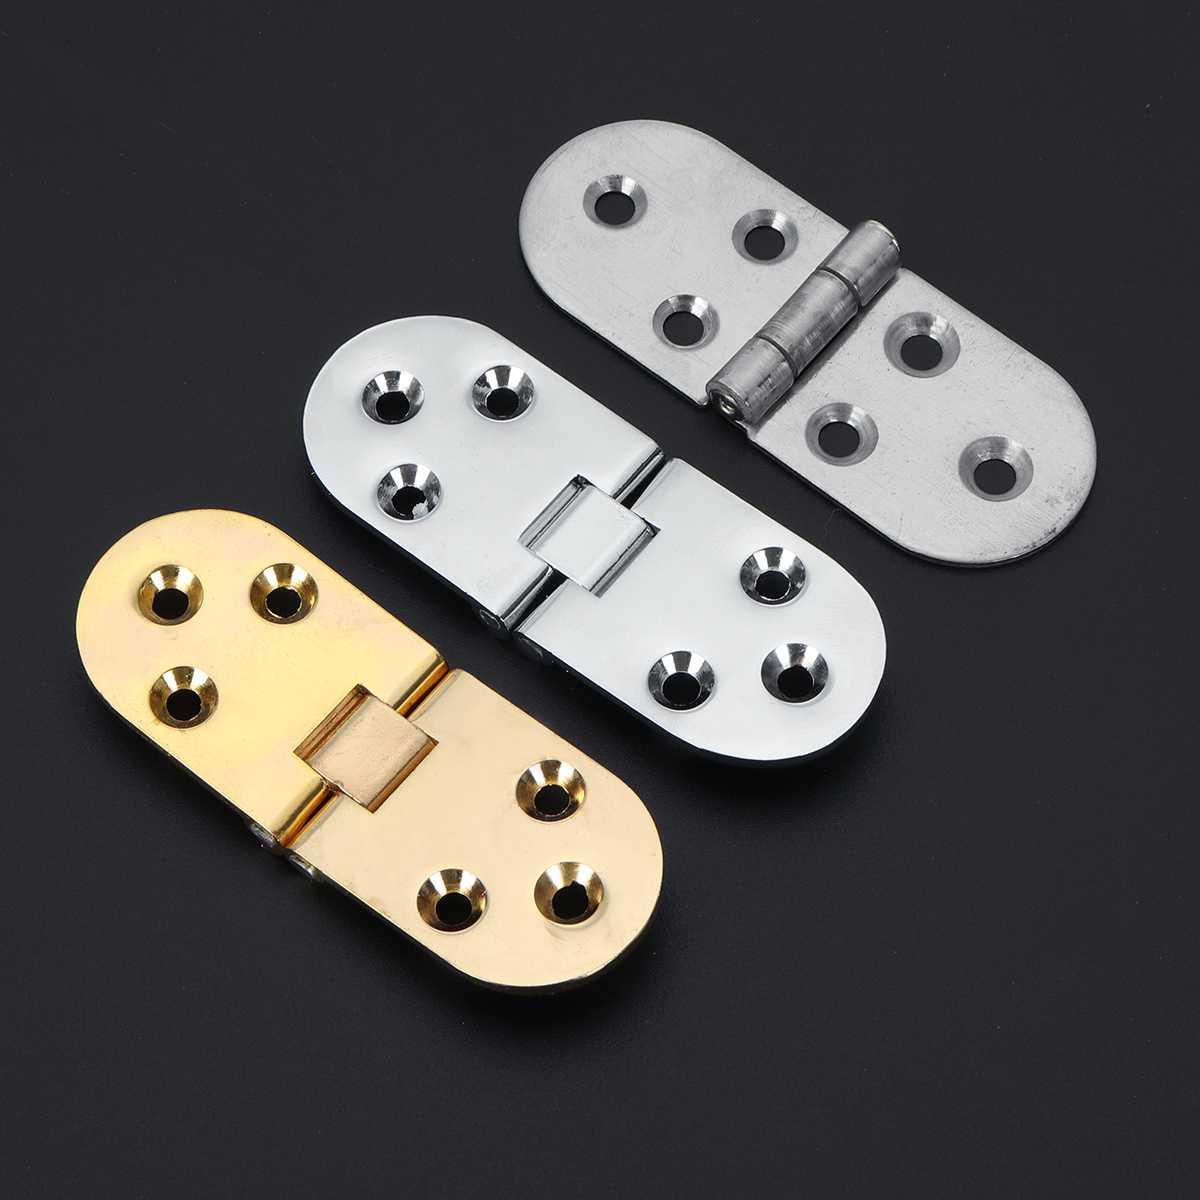 Zinc Alloy Alloy Metal Hinge Round Edge Sewing Machine Folding Table Cabinet Furniture Flip Tray Hinges Big Door Hinge 80mmx30mm